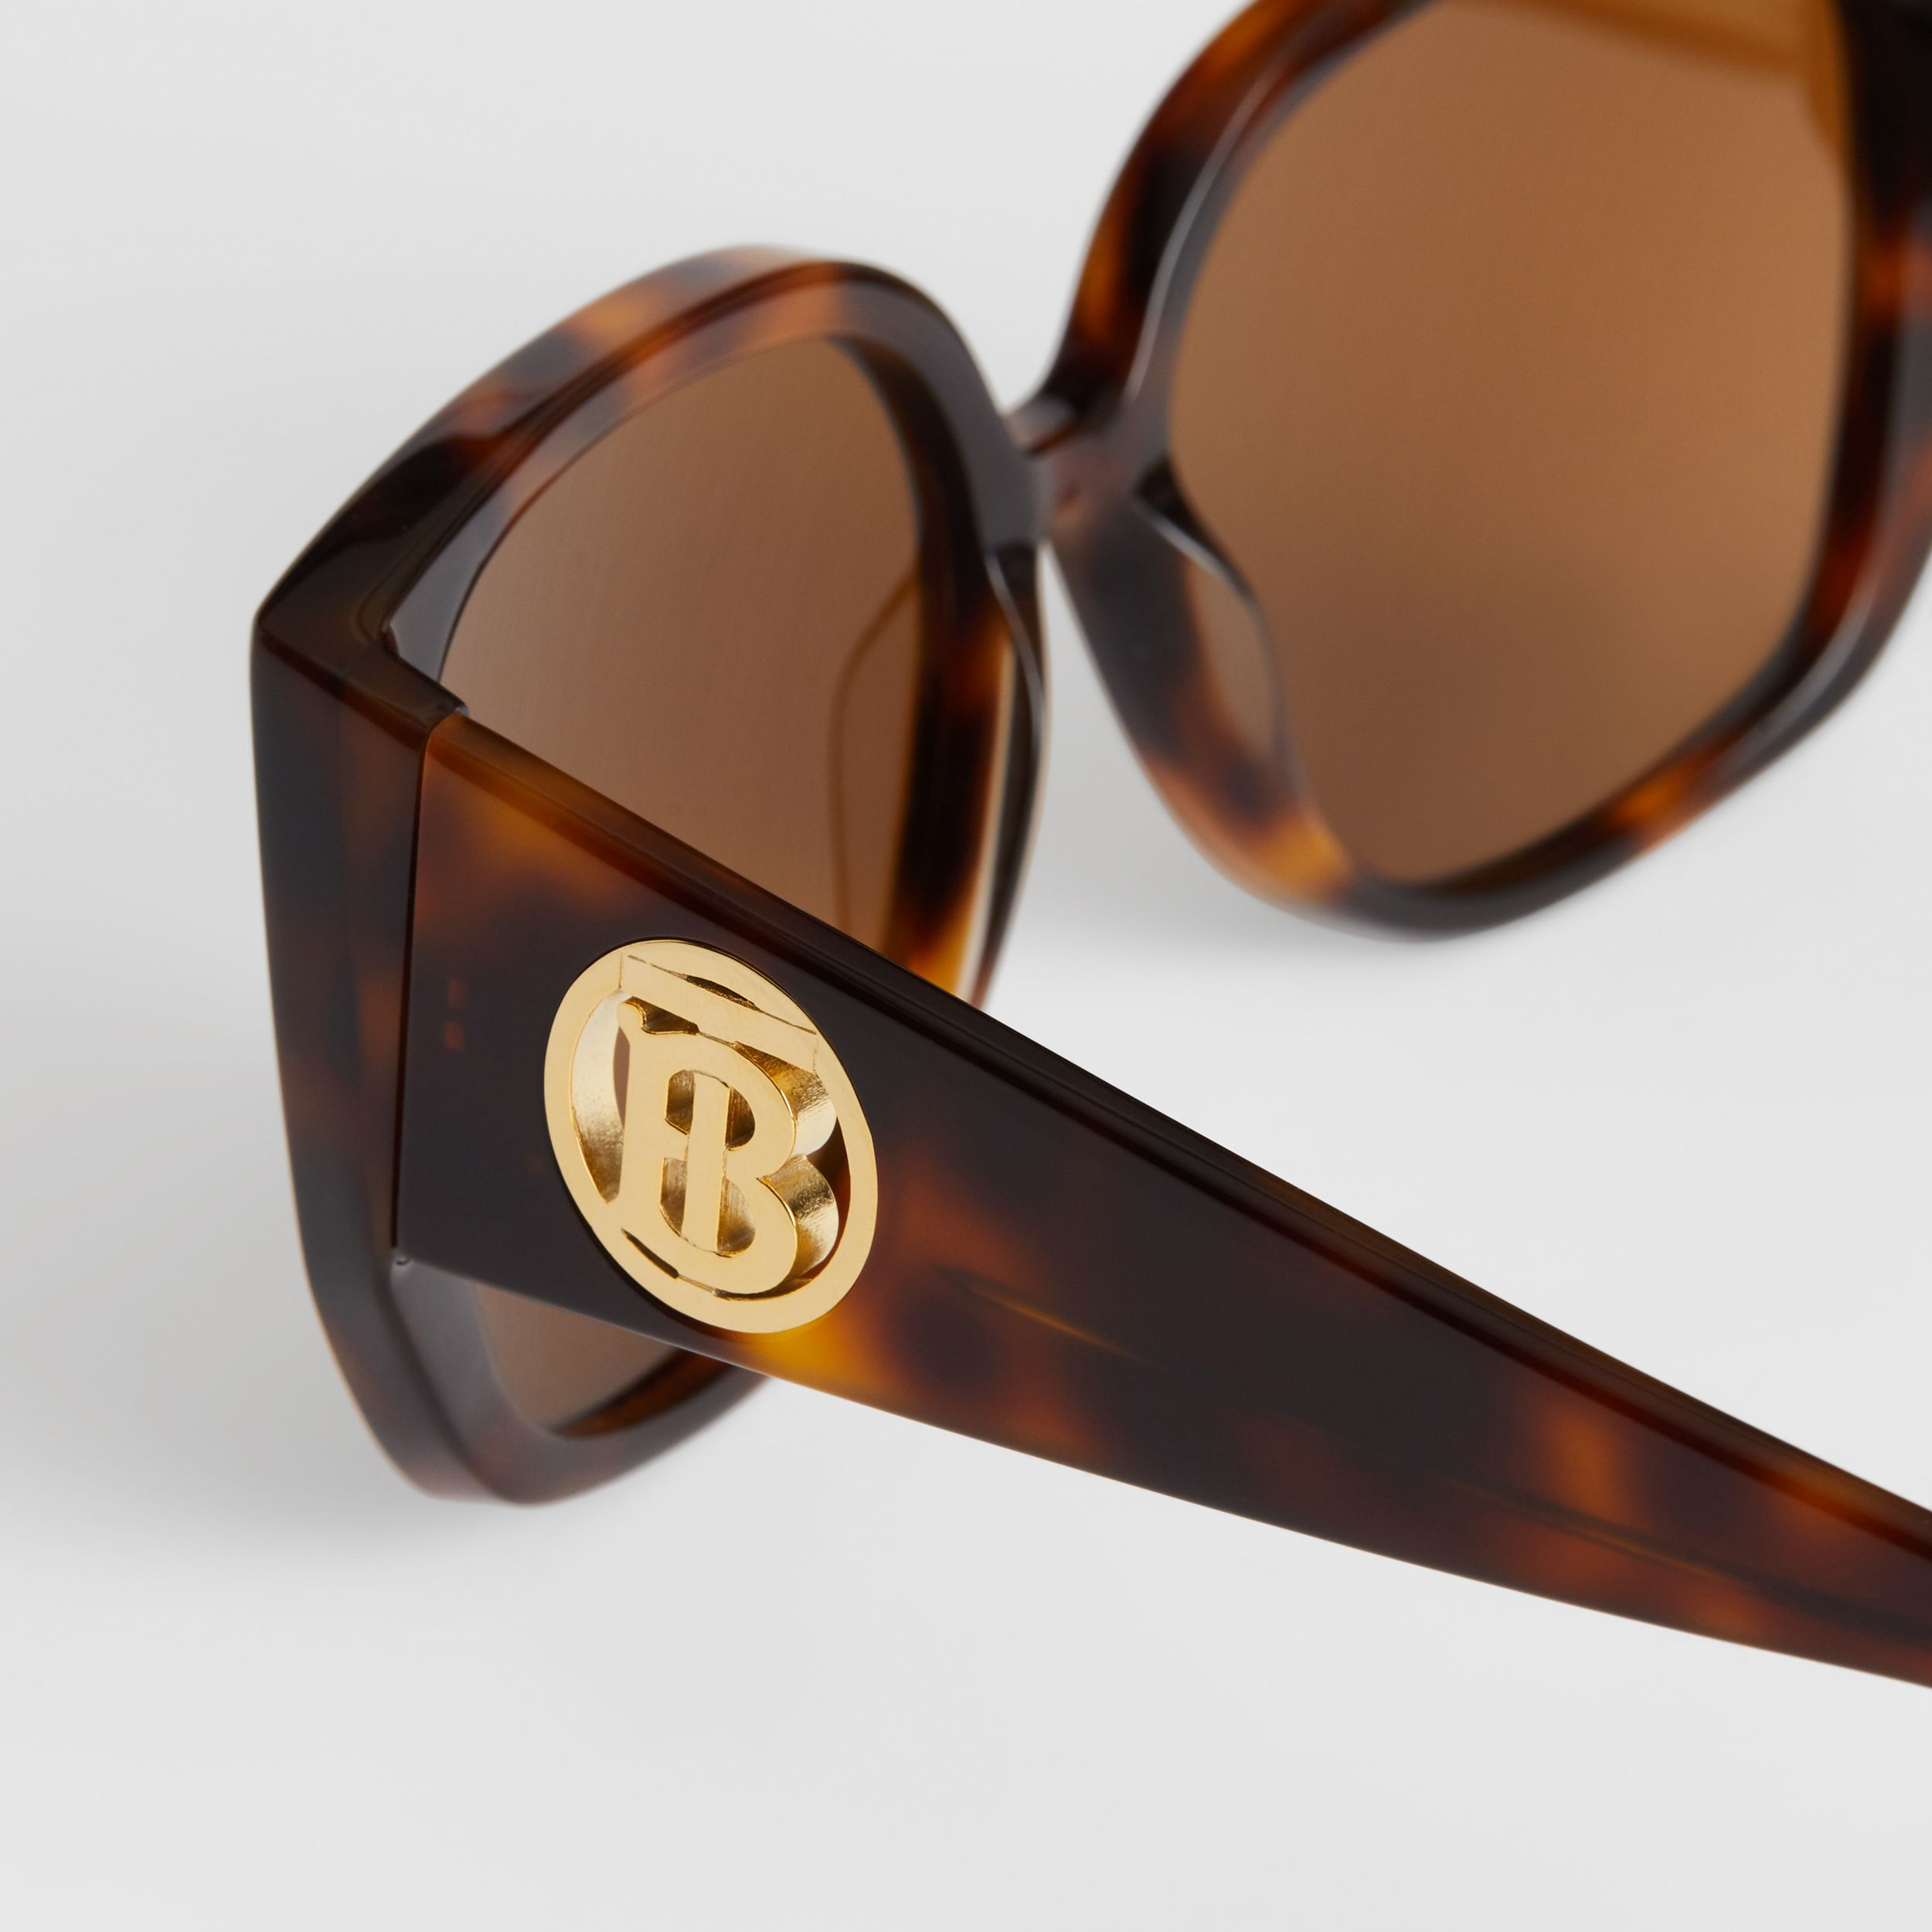 Oversized Butterfly Frame Sunglasses in Tortoiseshell - Women | Burberry Australia - 2